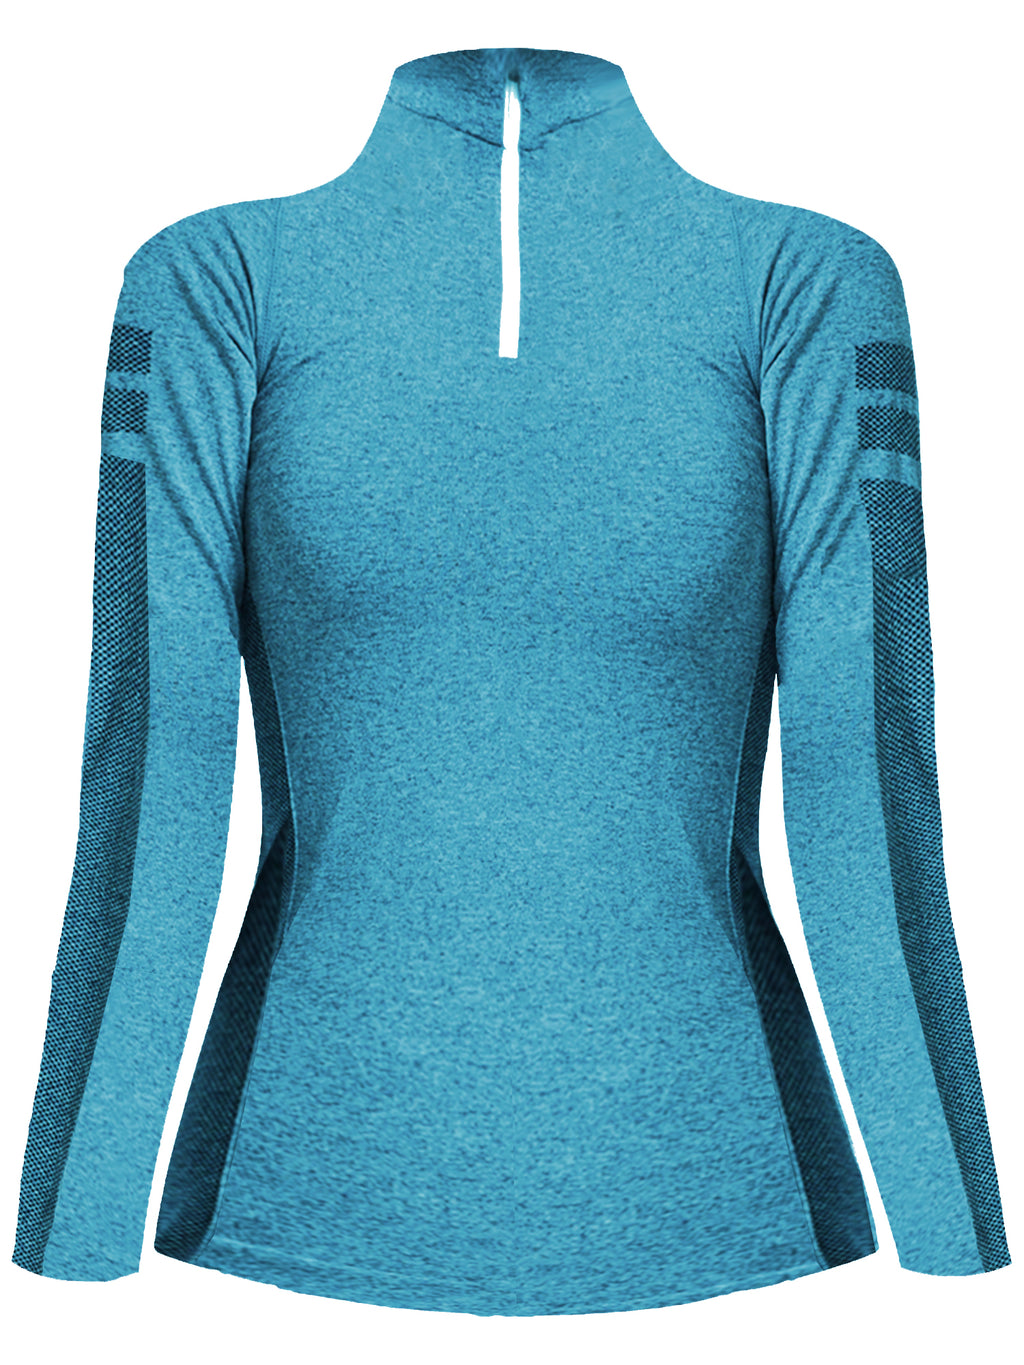 Aqua Blue Quarter Zip Long Sleeve Pullover